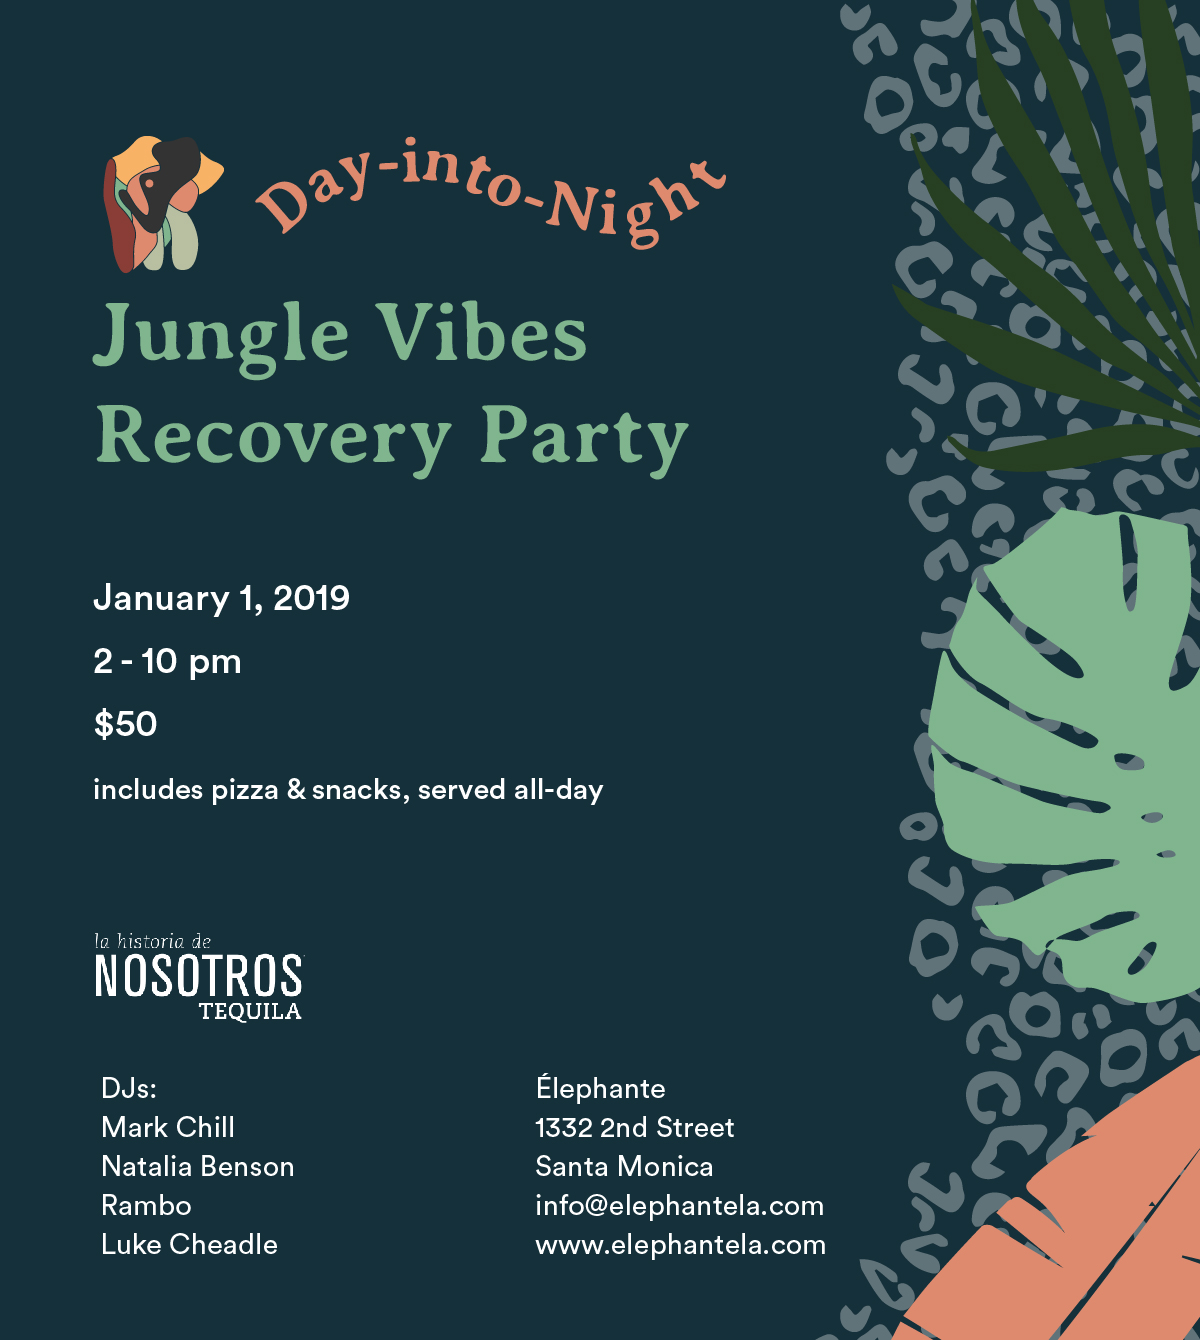 Élephante's Jungle Vibes Recovery Party